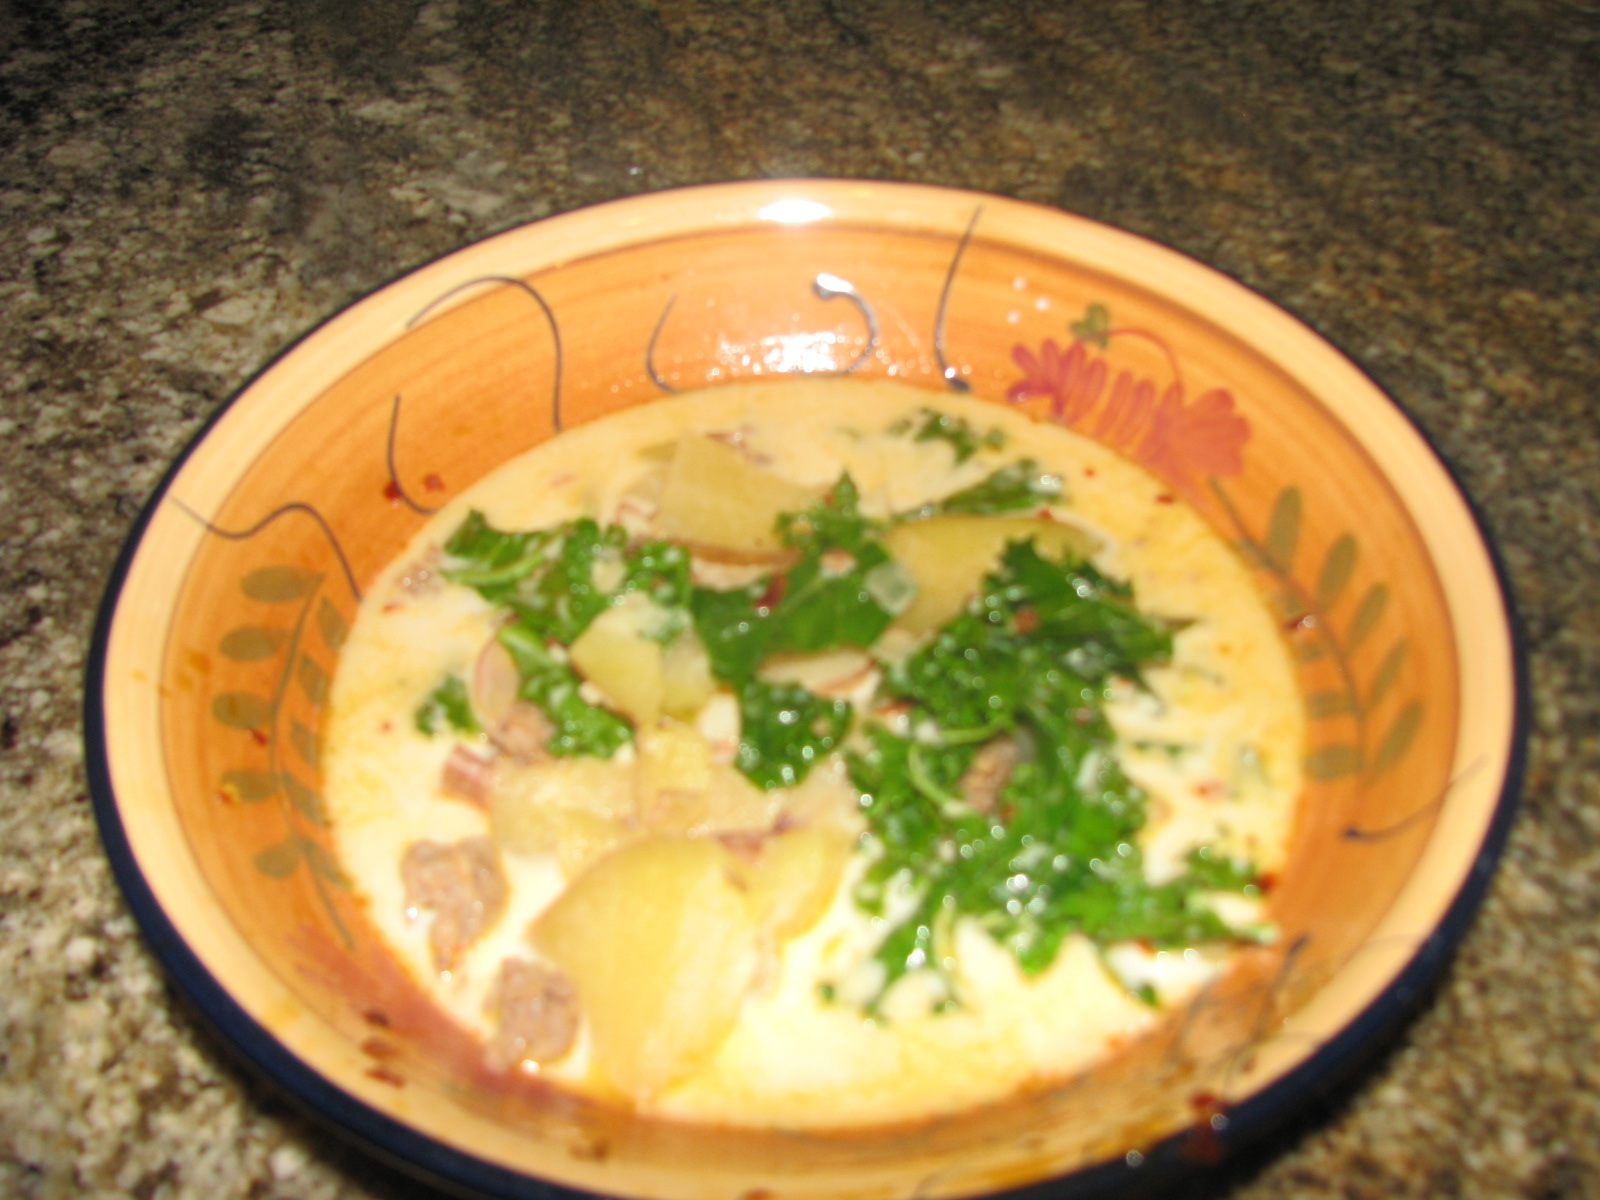 Olive Garden 39 S Zuppa Toscana Soup Italian Sausage And Potato Soup Dee Dee Loves Recipes